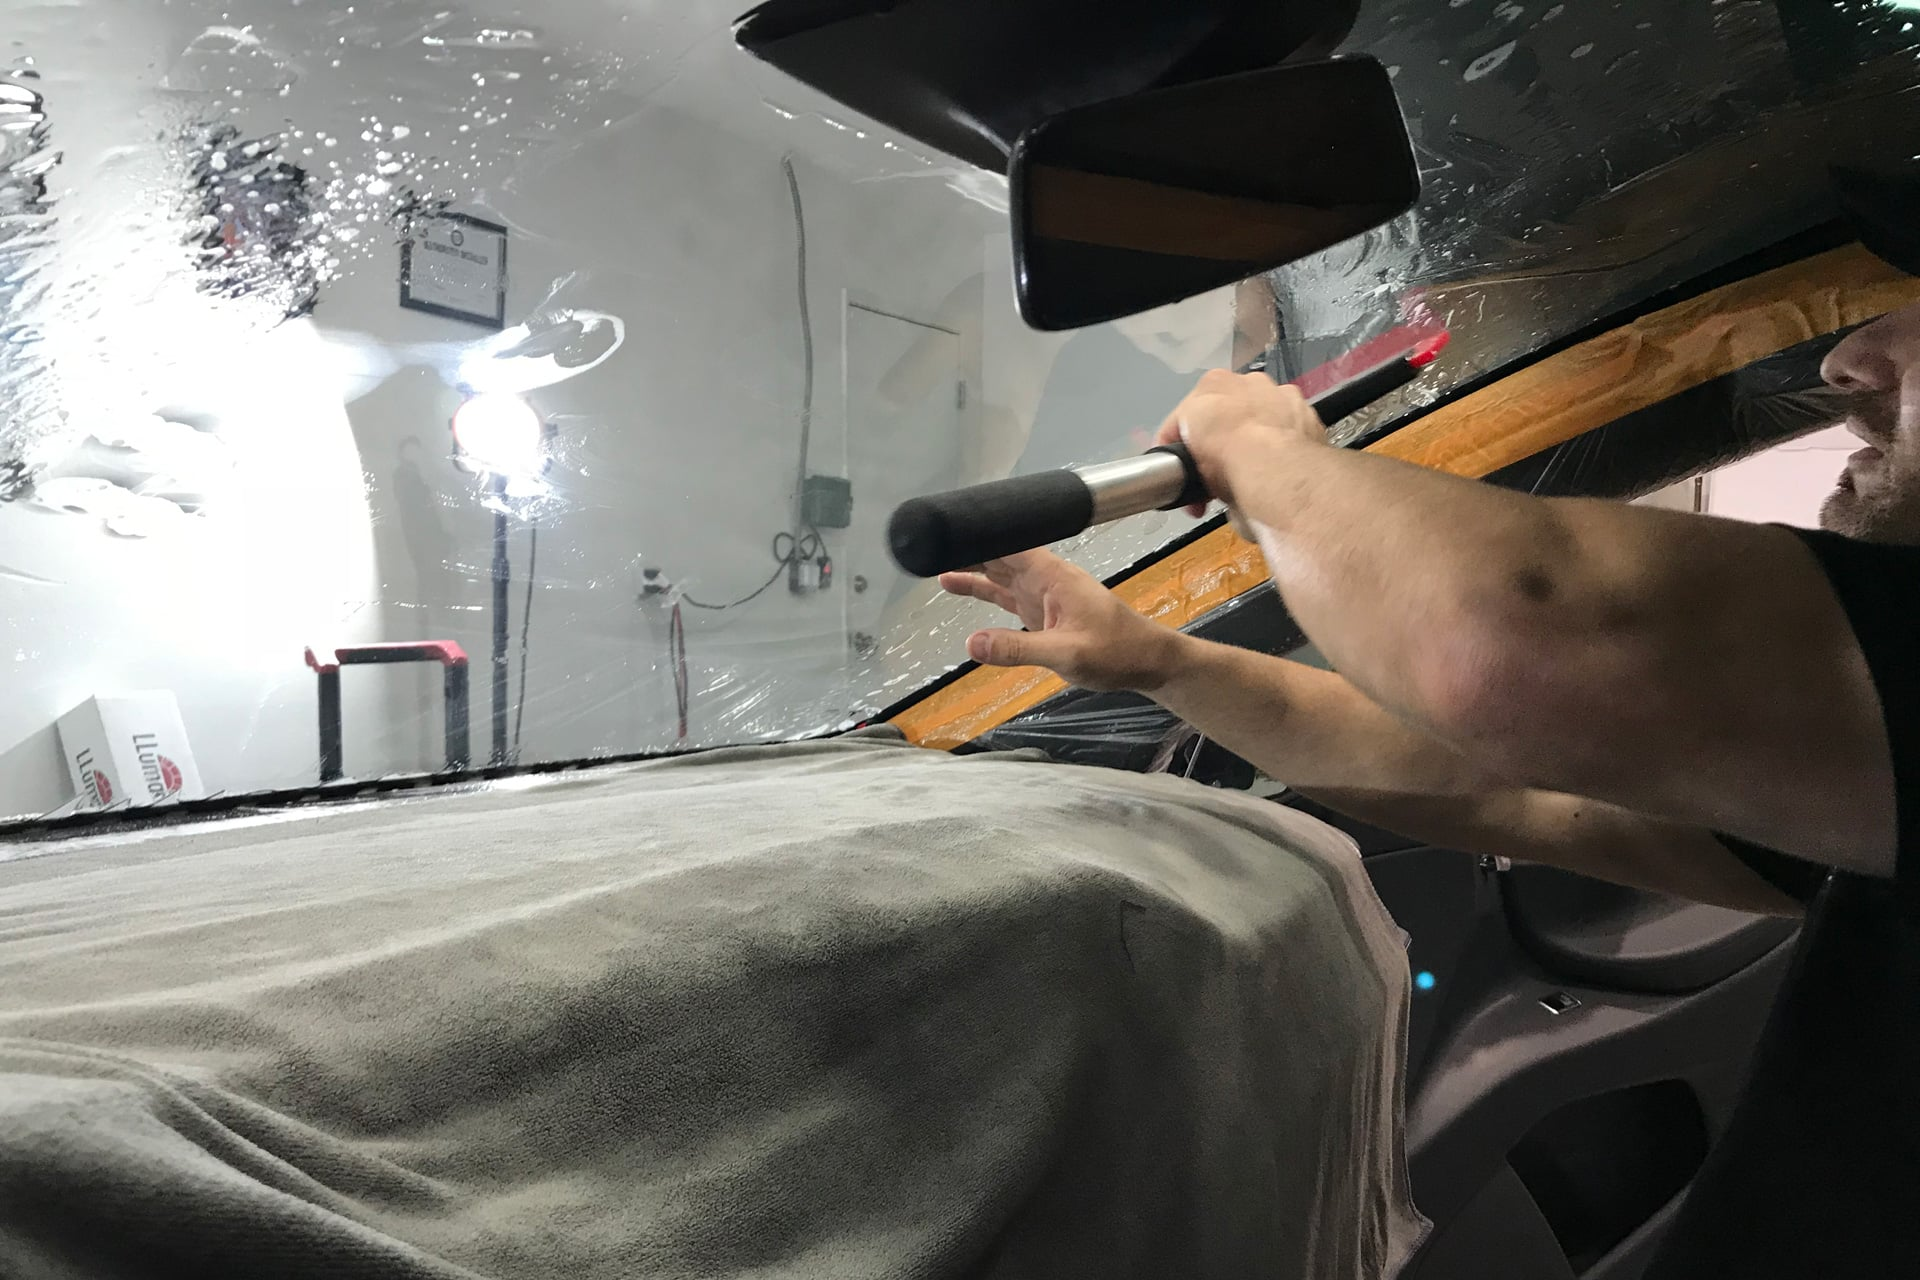 Tyler O'Hara installing window tint on Tesla model